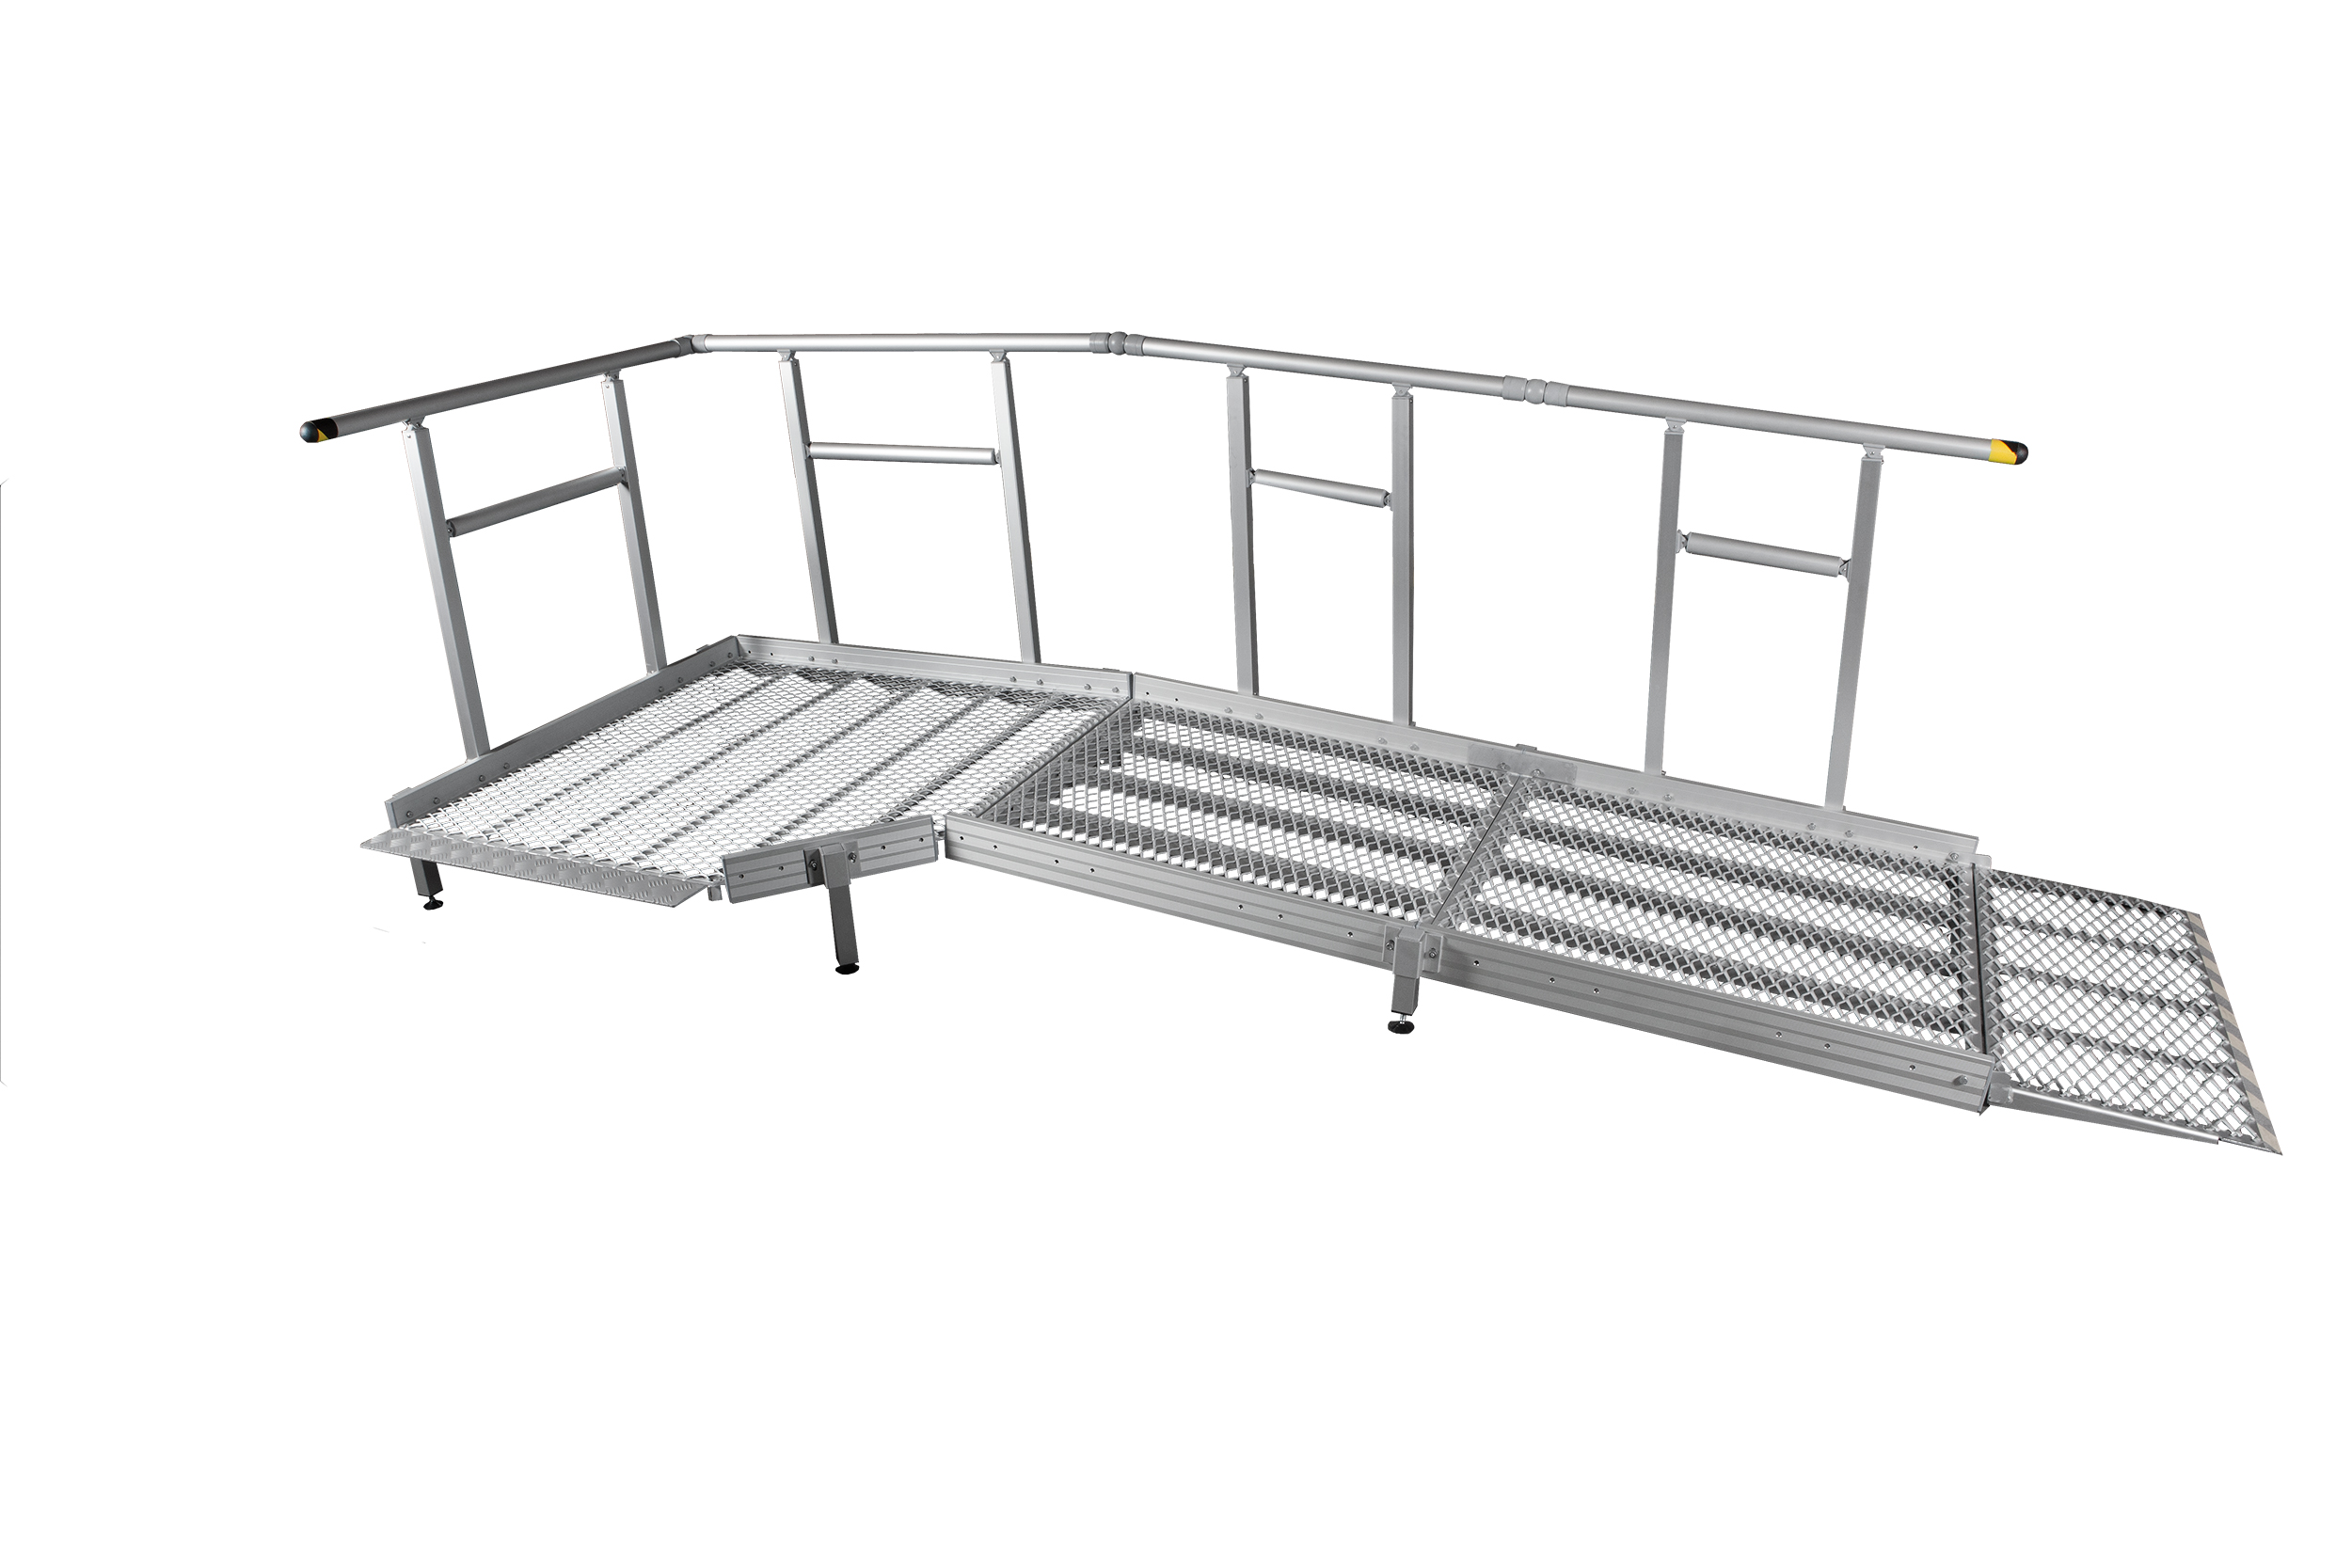 900mm Wide Ramp System with Handrails